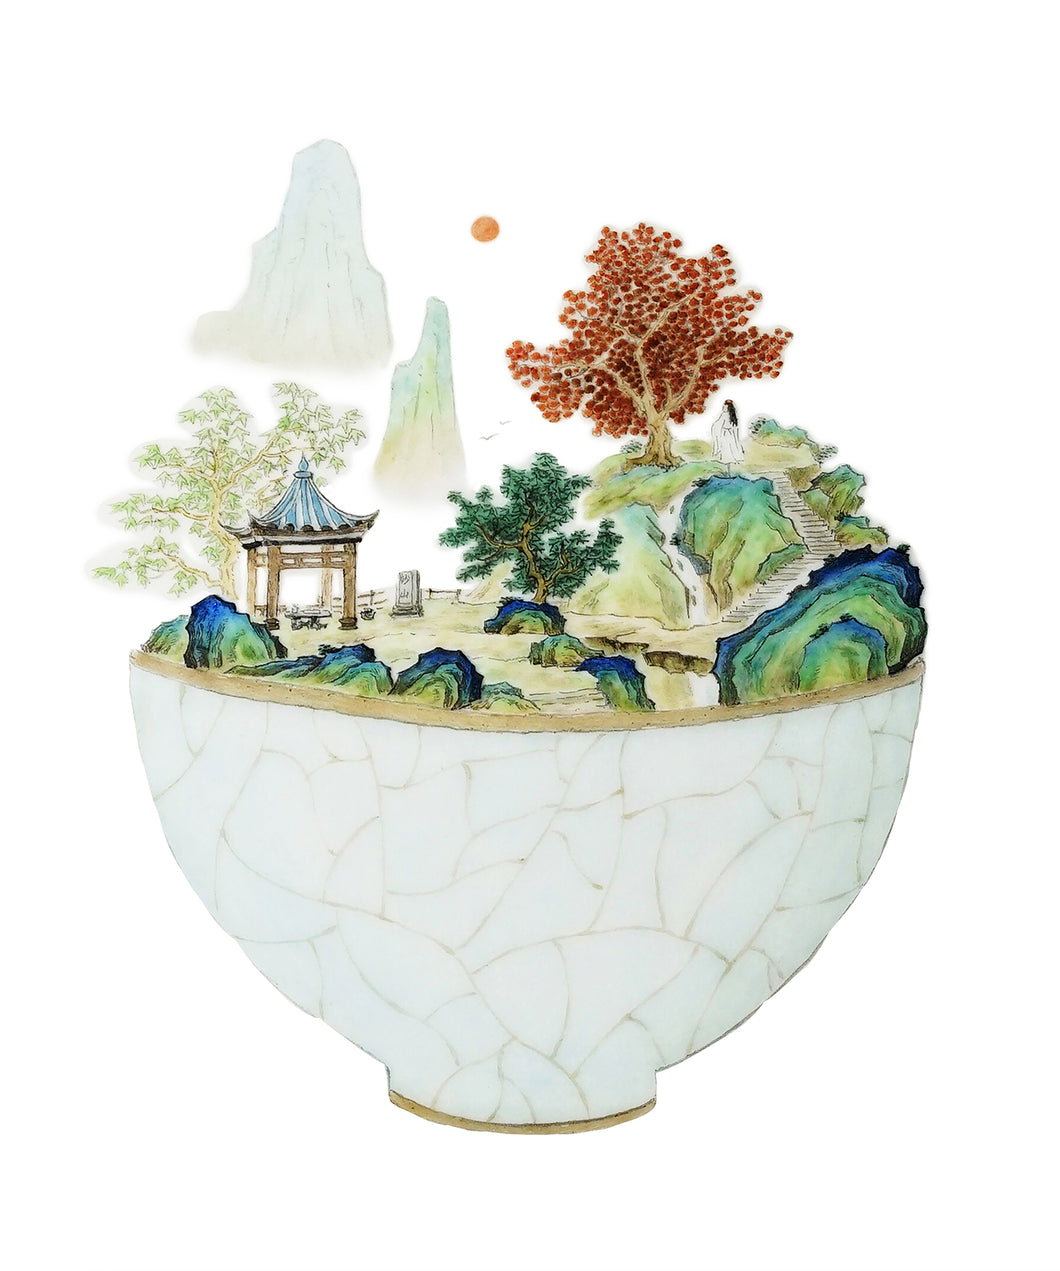 A watercolor of a teacup, with landscape scenery booming from its rim. This image represents Steeped Content's expertise, tea.